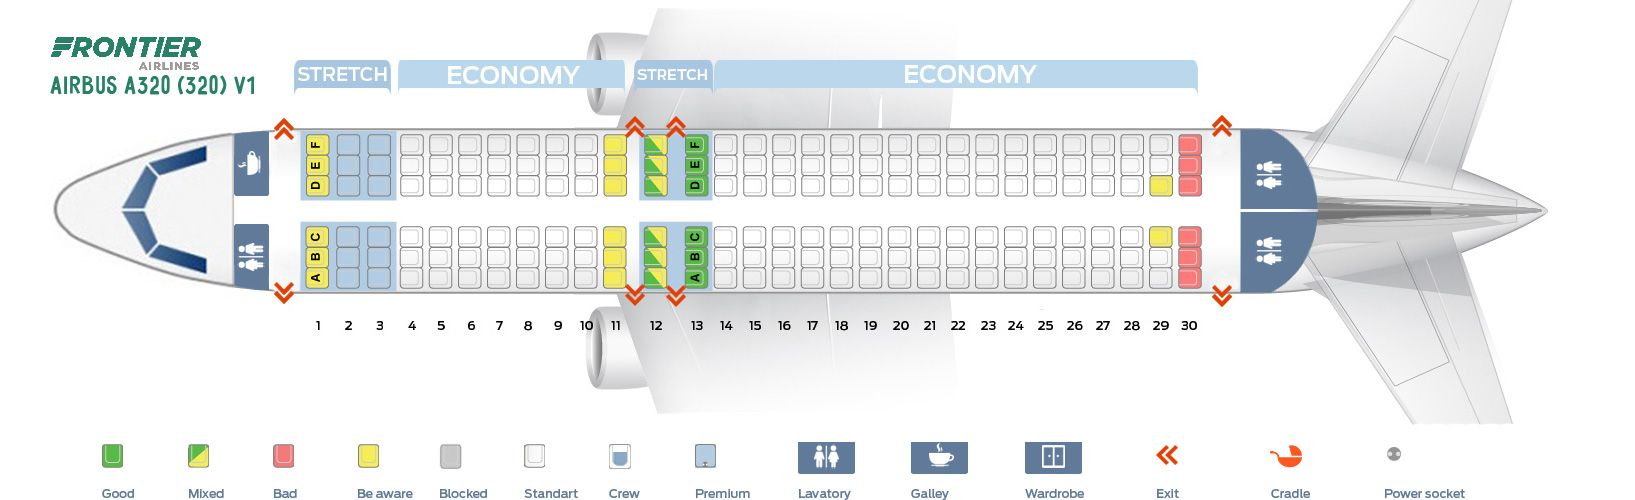 Frontier Airlines Airbus A320 200 Seat Map And Seating Chart Cabin V1 320 Seating Plan Seating Charts Airbus